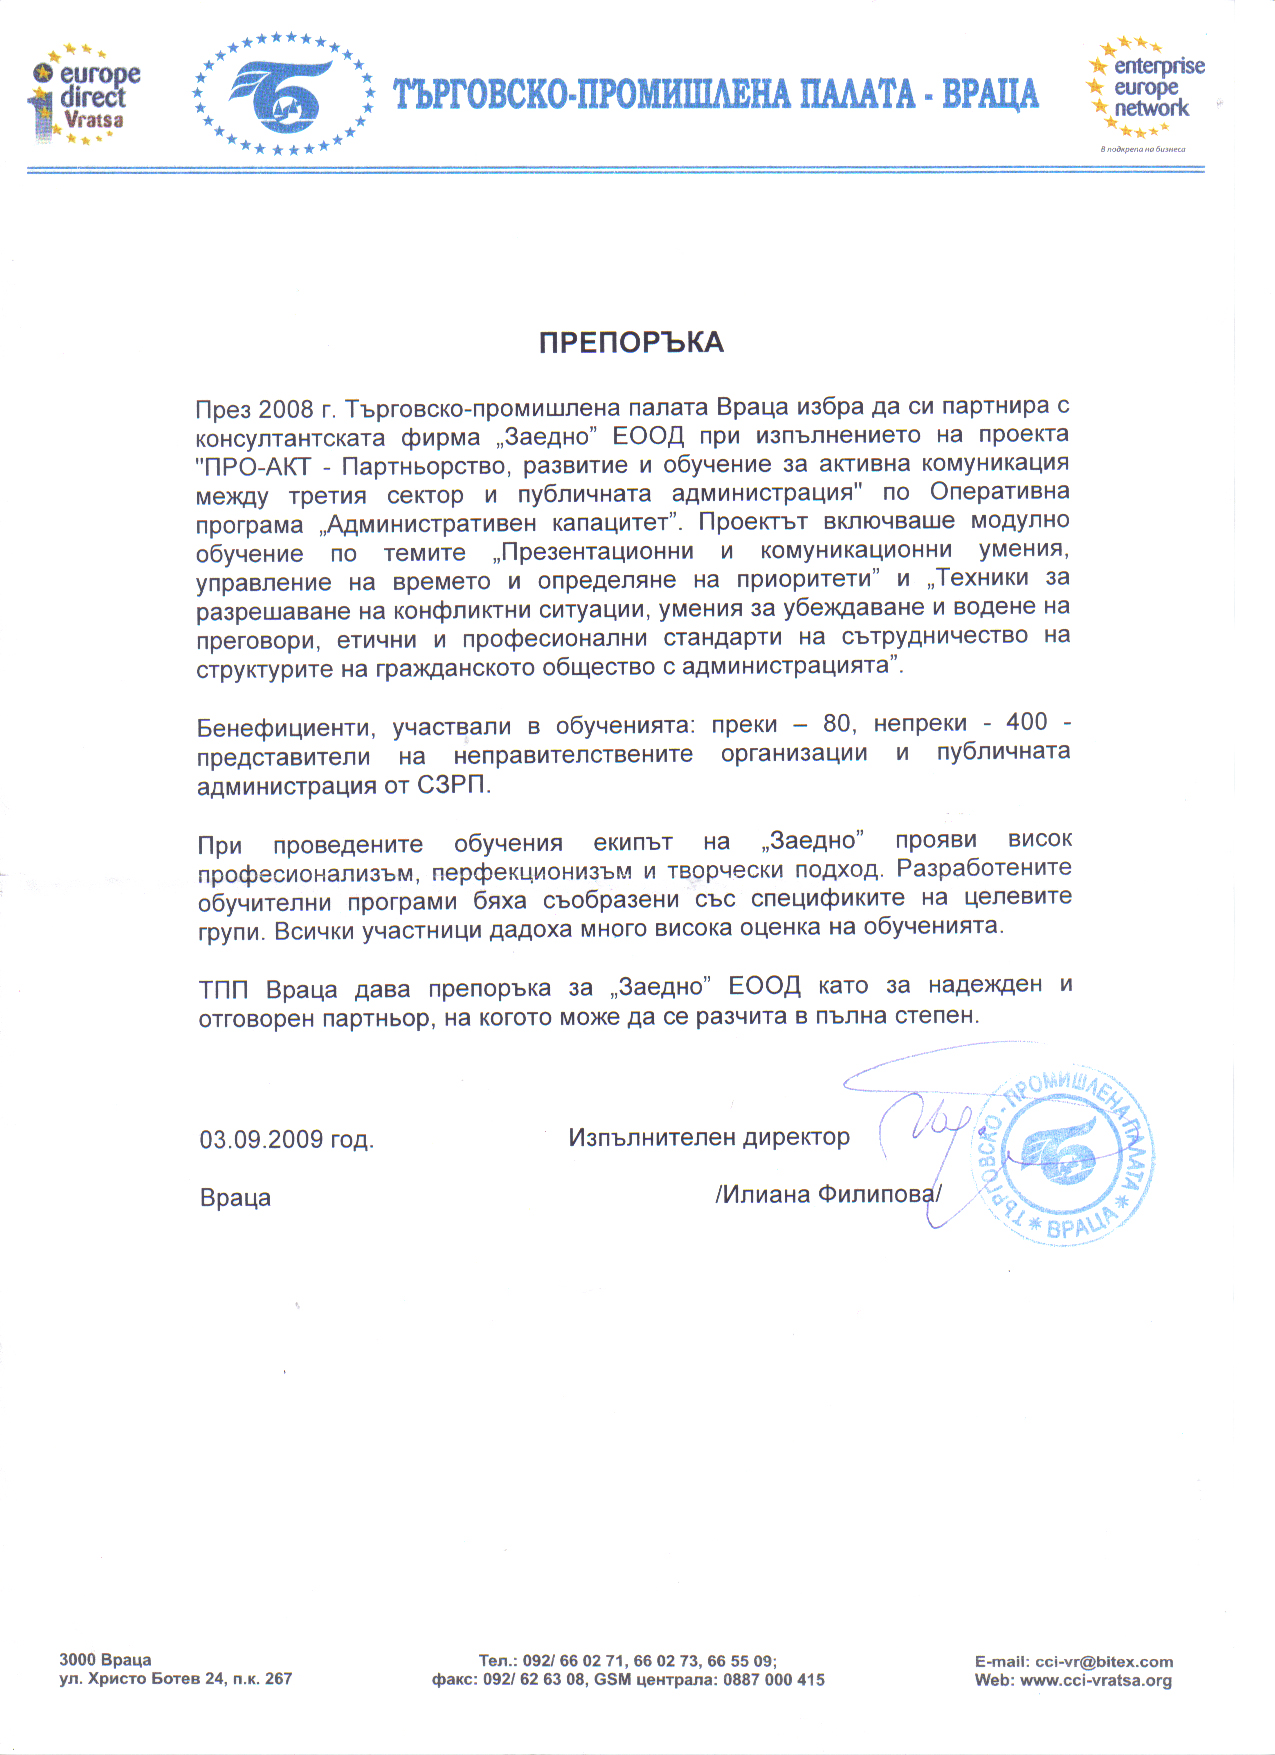 Personal Letter Of Reference Format from www.zaedno-bg.com